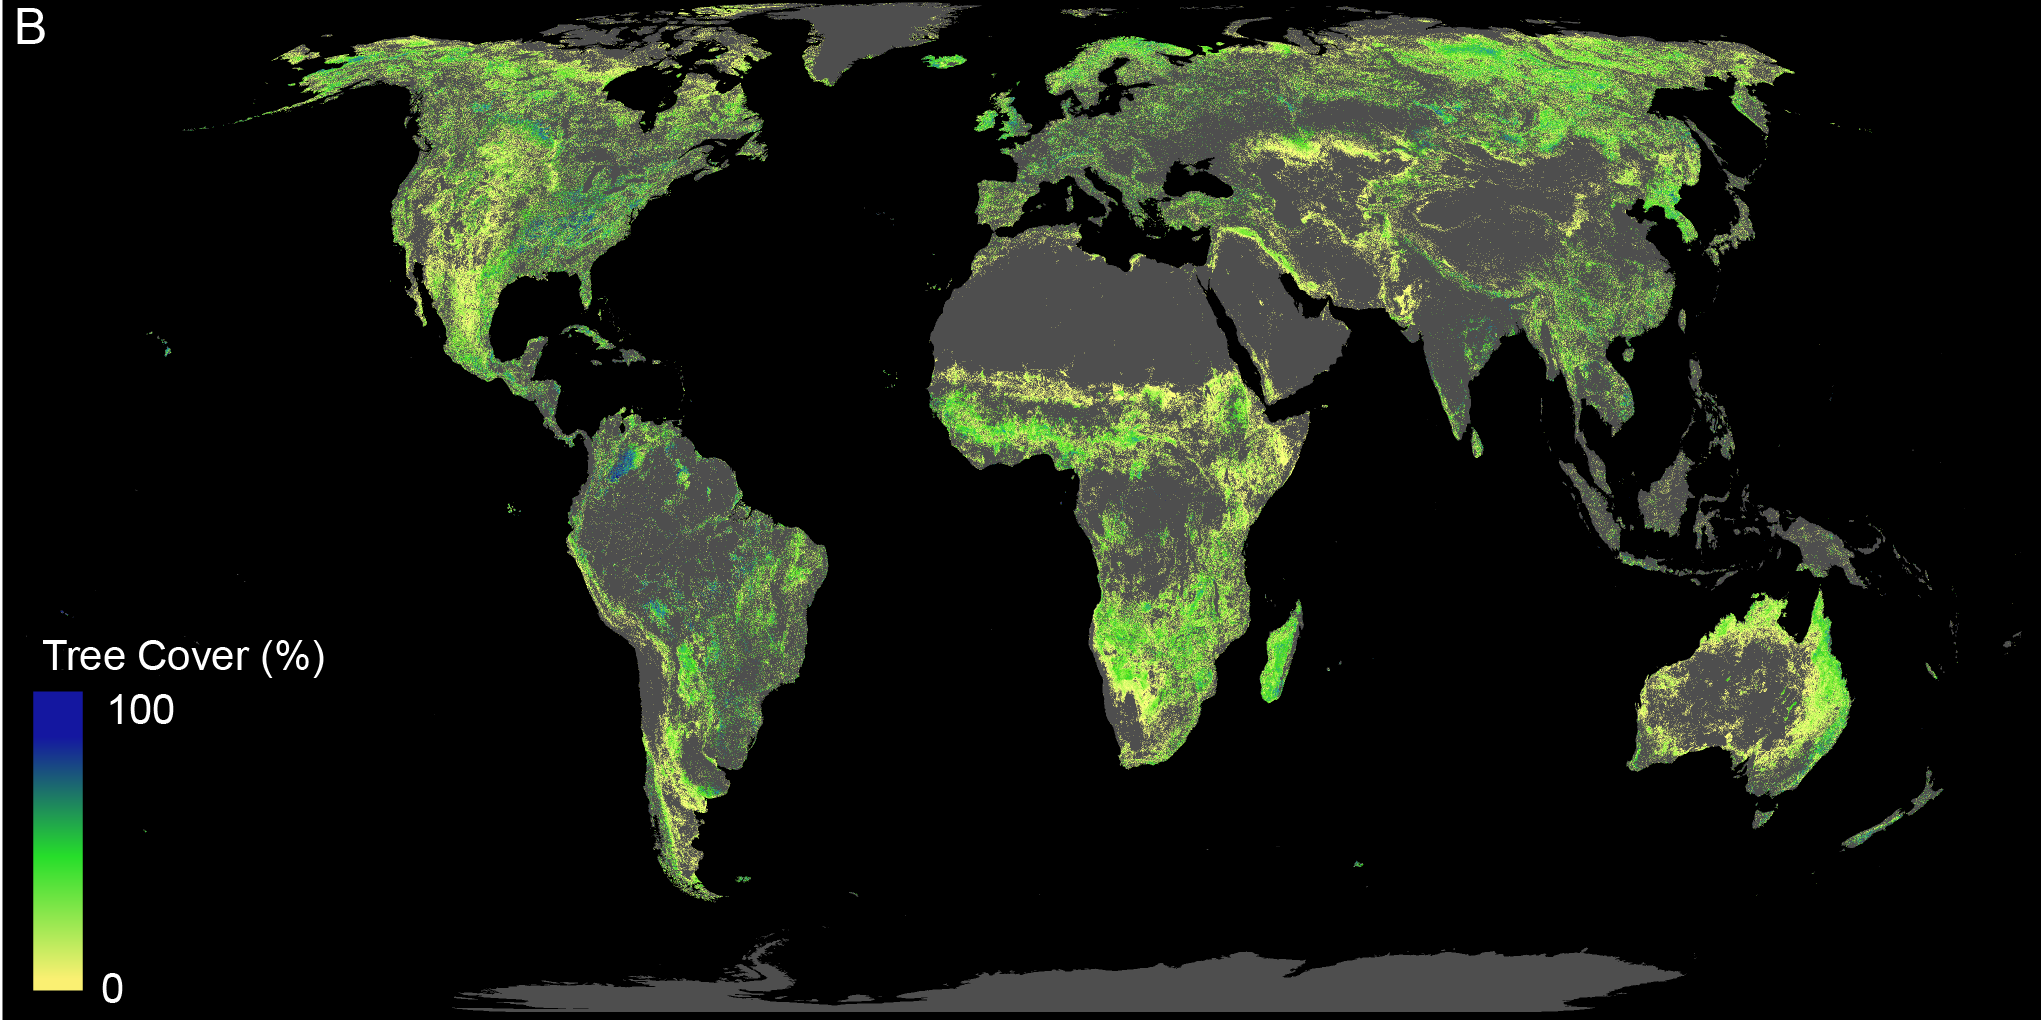 Land available for forest restoration (excluding deserts, agricultural and urban areas; current forestland not shown)